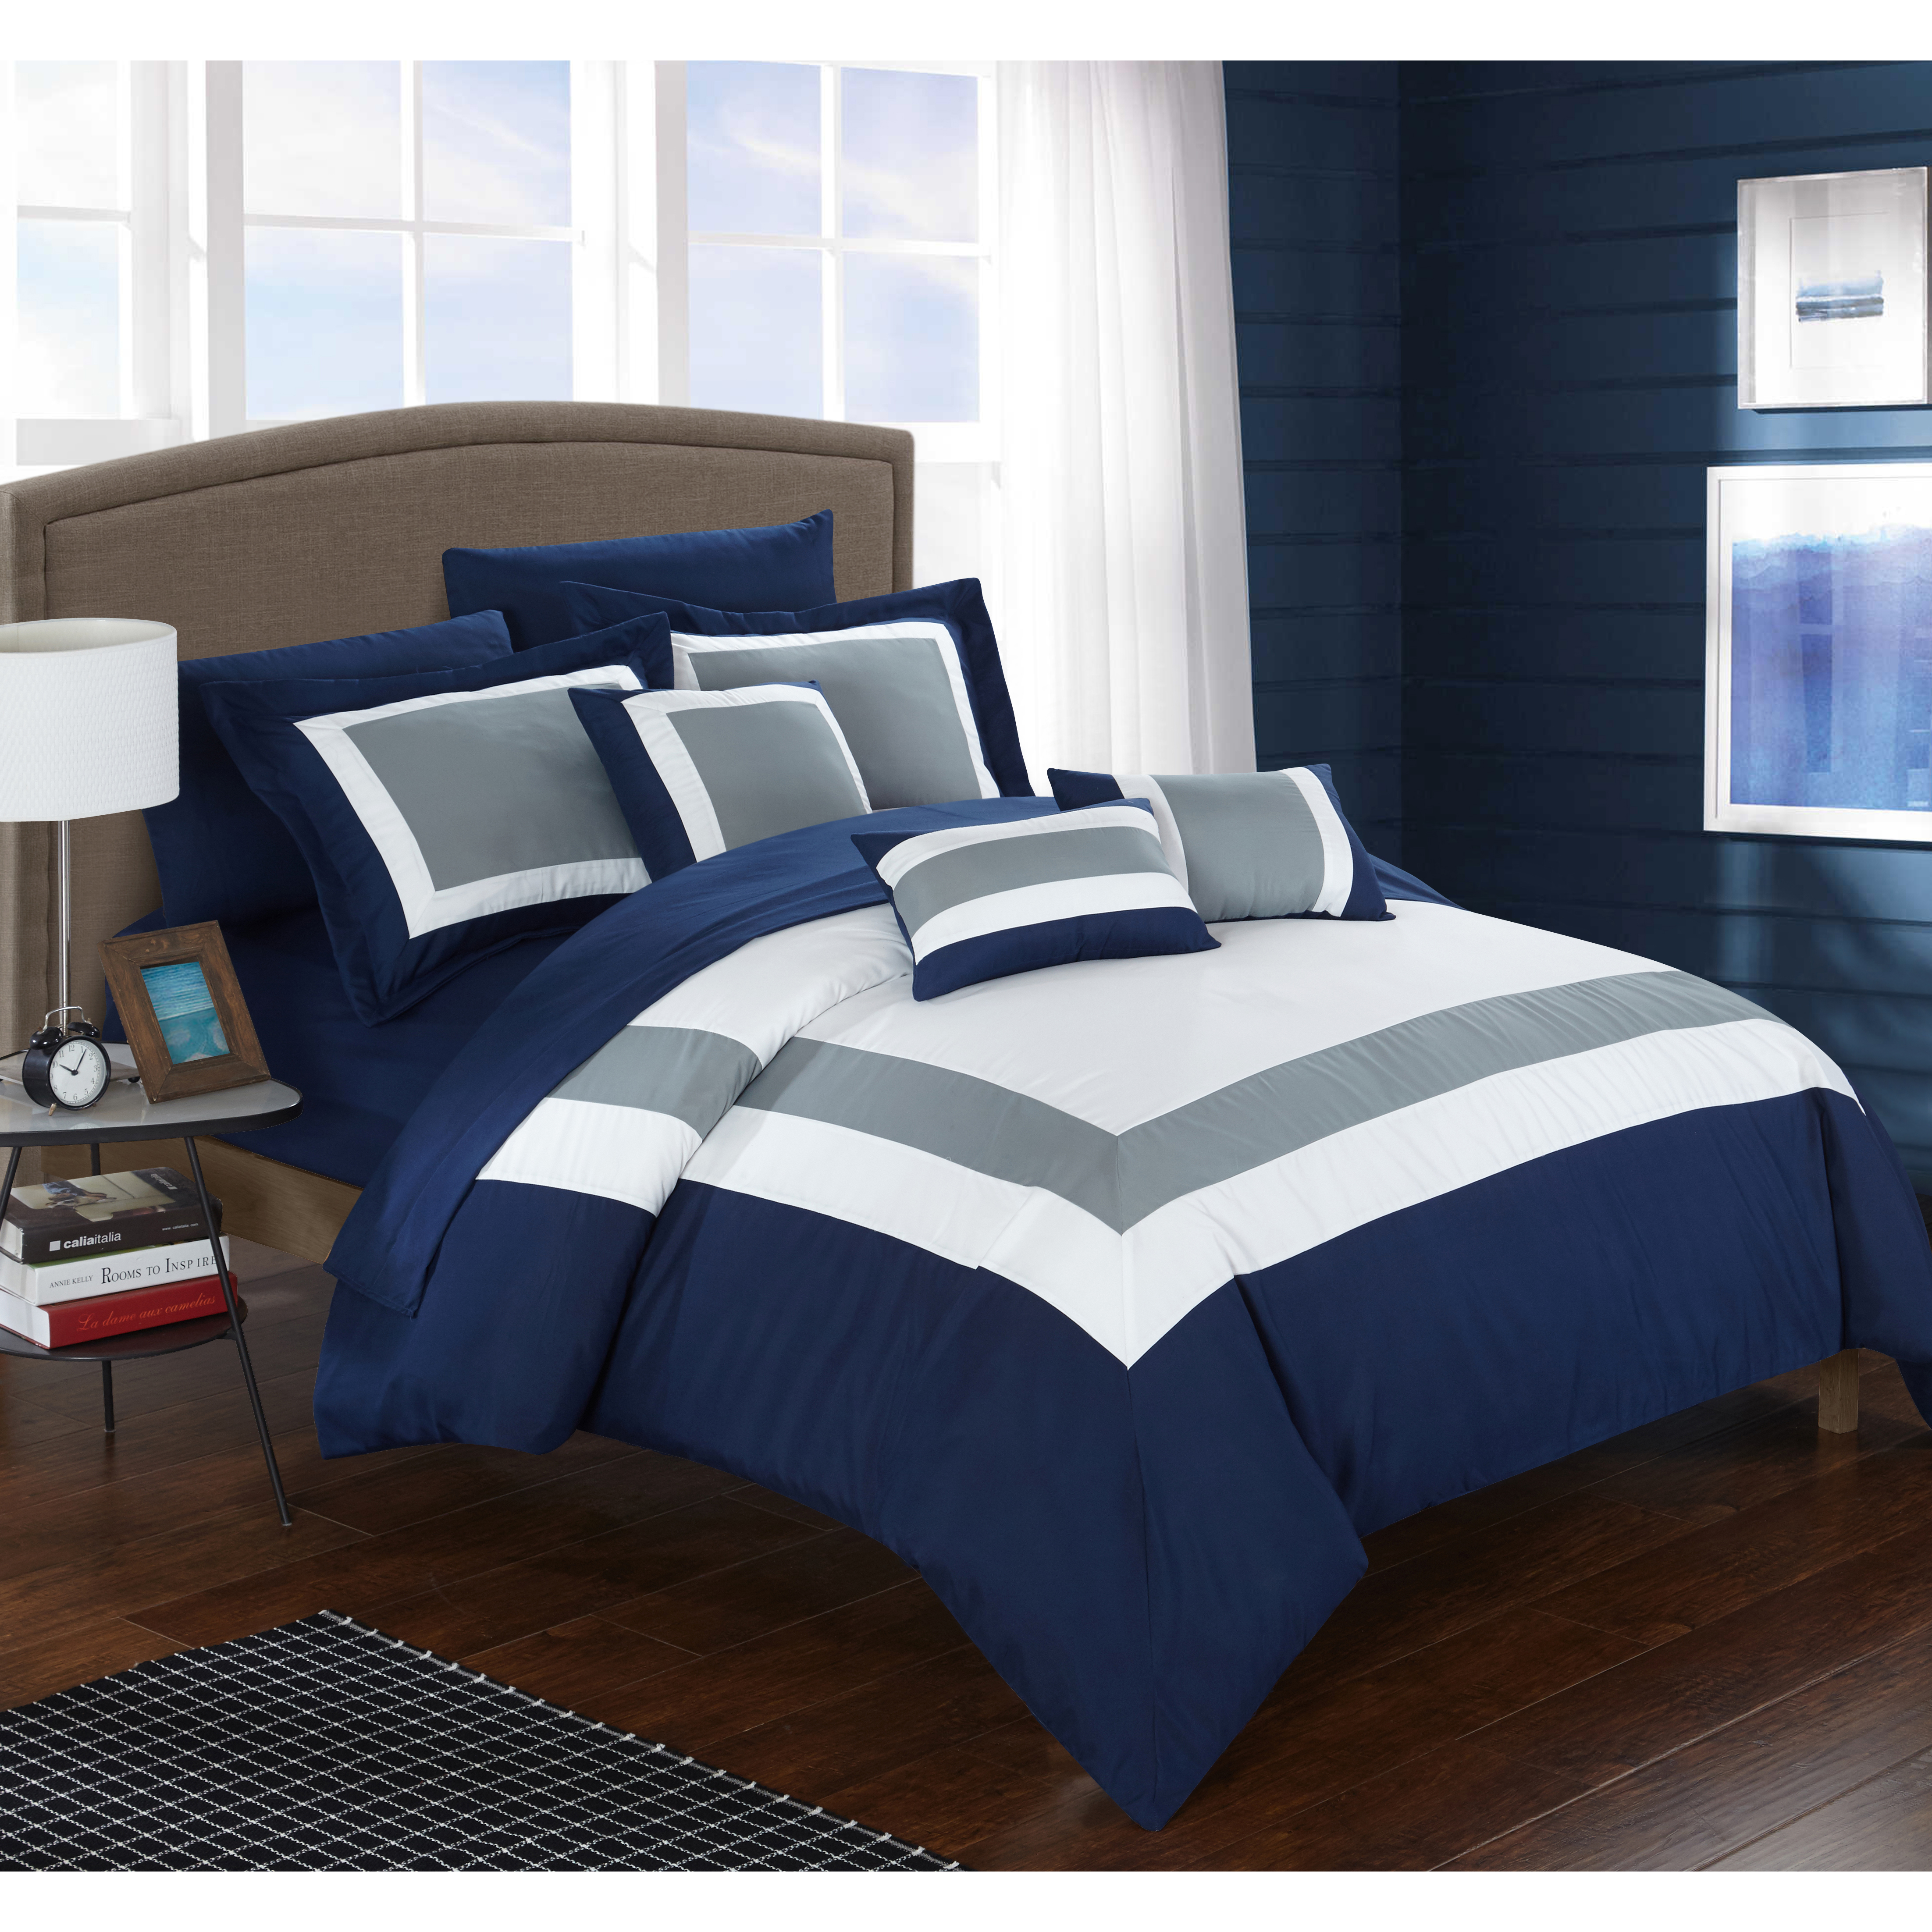 10 Piece Danny Colorblock Bed In A Bag Comforter Sets Tanga